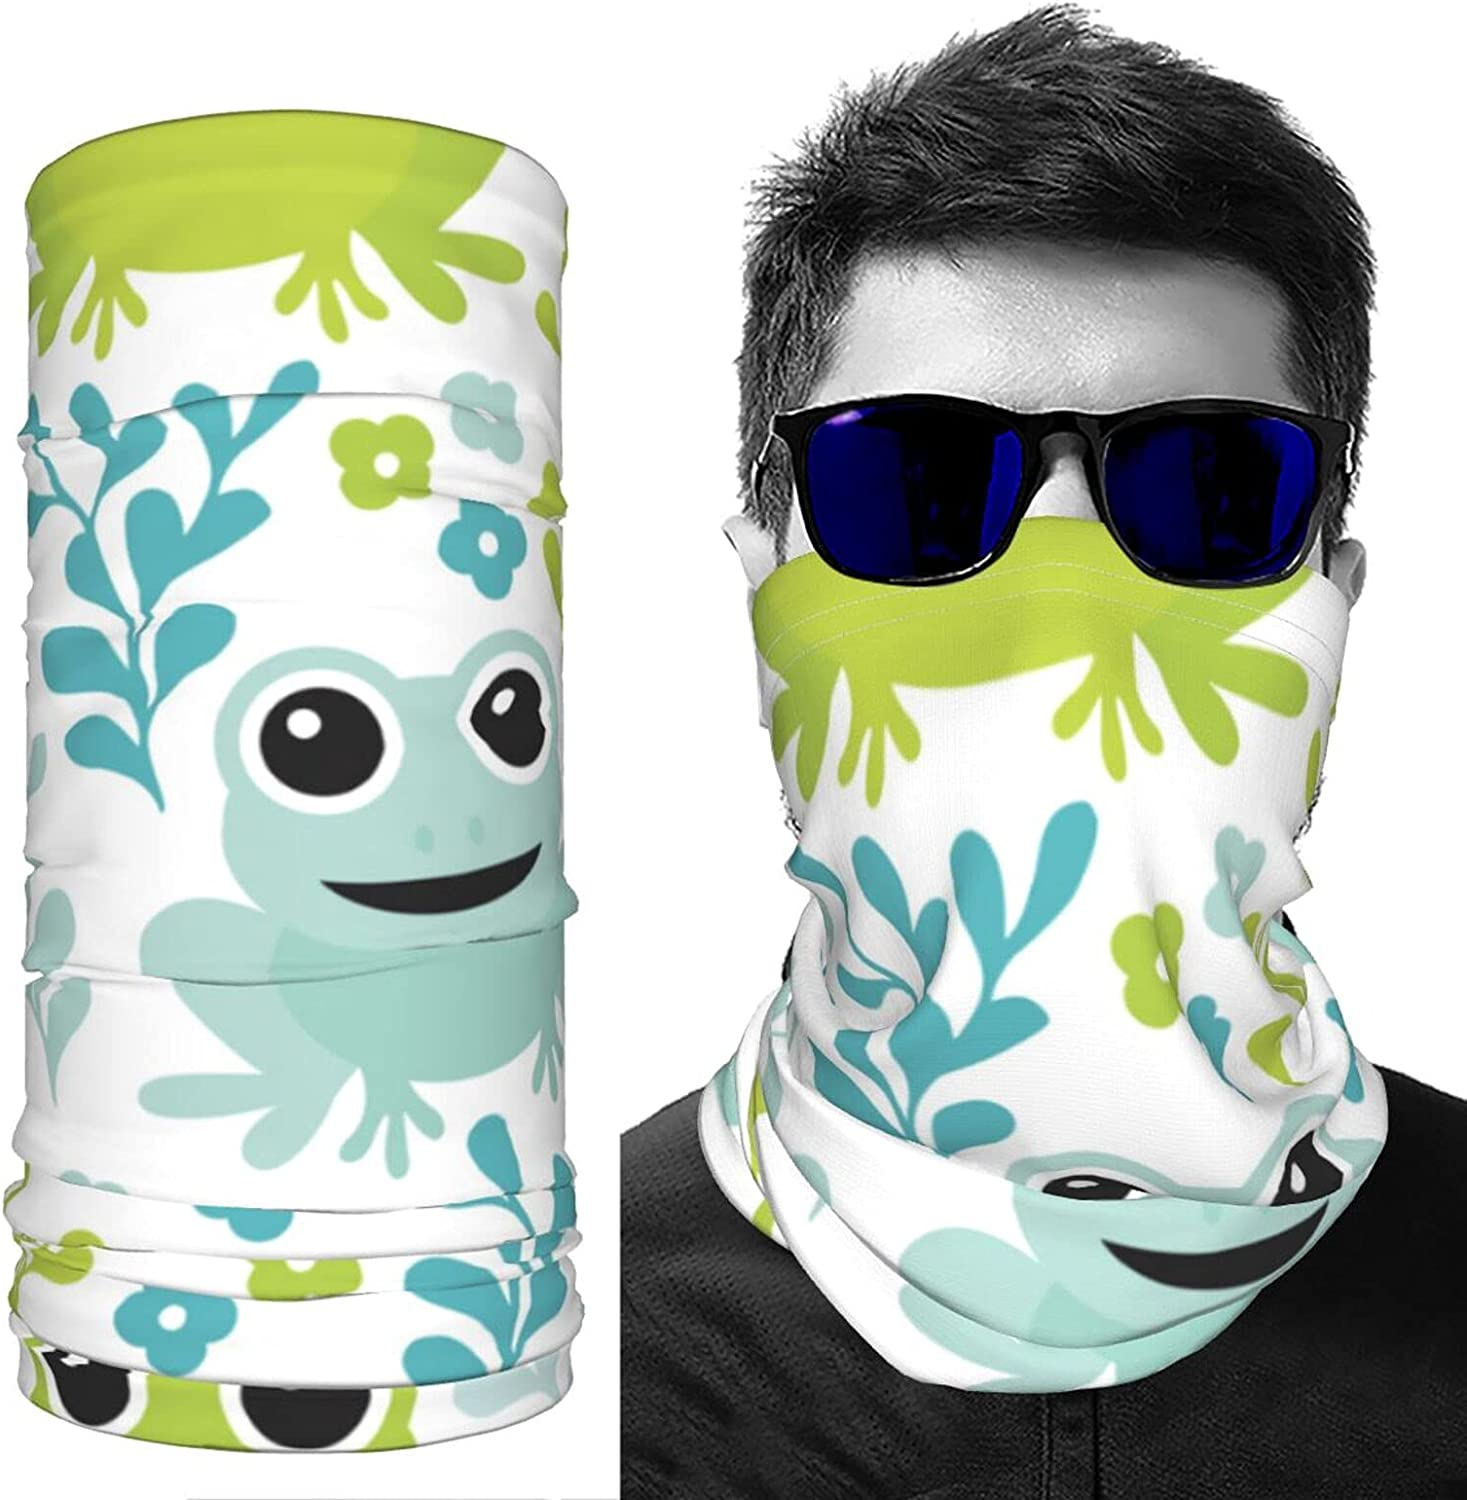 Adorable Kids Frog Woodland Animals Summer Ice Silk Breathable Face Mask Neck Gaiter Scarf Bandanas for Fishing,Hiking,Running,Motorcycle and Daily Wear